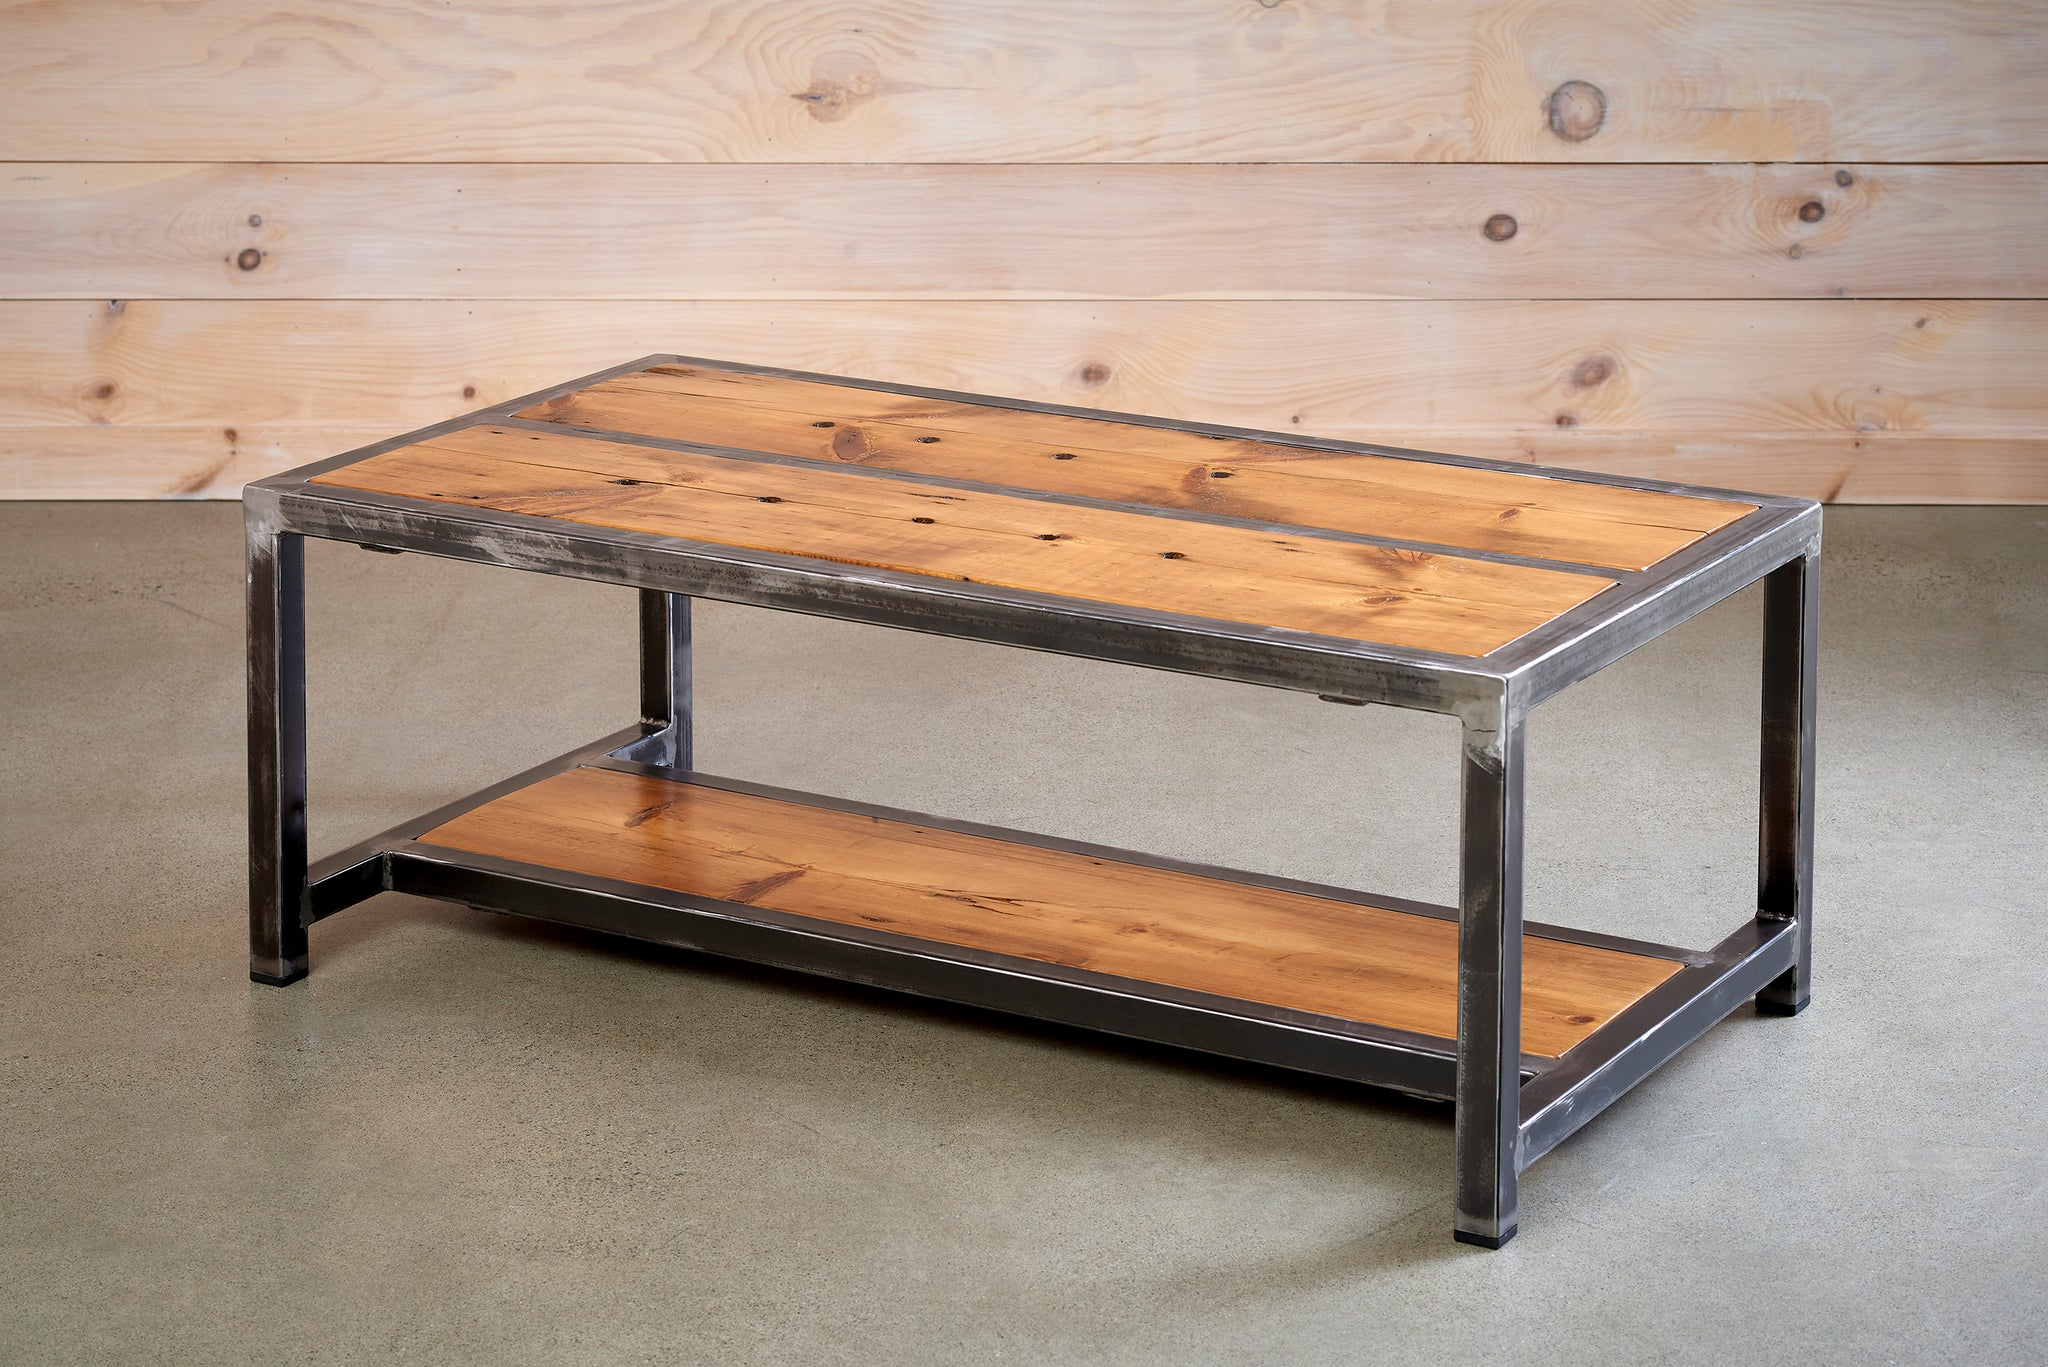 - Coffee Table With Box Steel Legs And Frame - Andrew Pearce Bowls